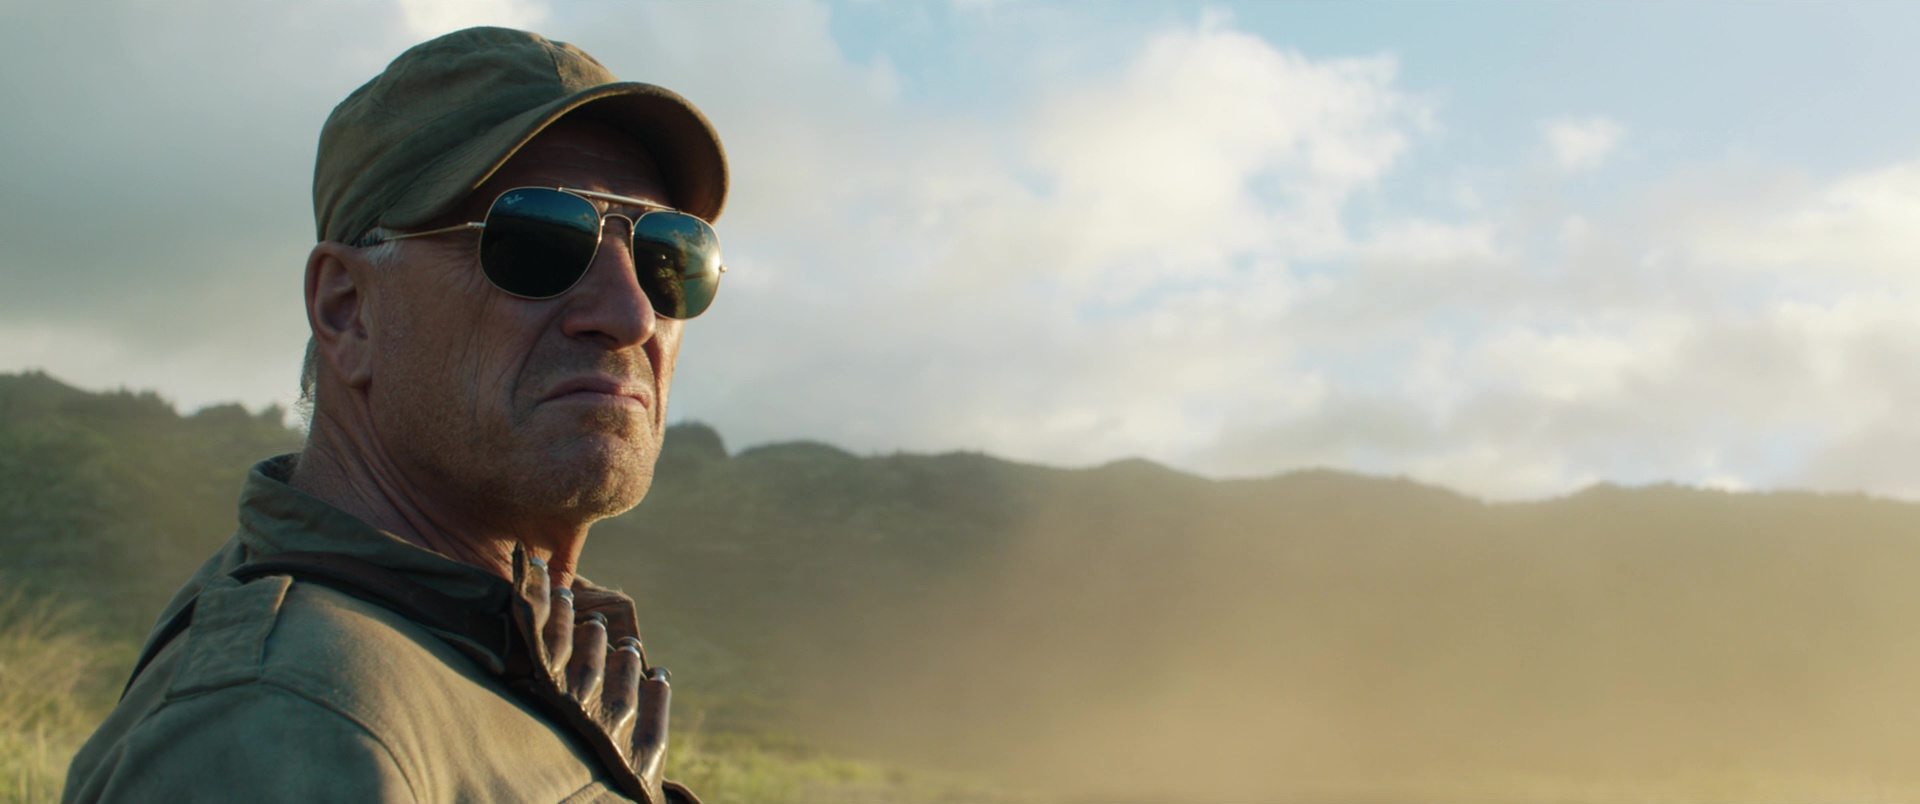 Ray-Ban Sunglasses Worn by Ted Levine in Jurassic World ...